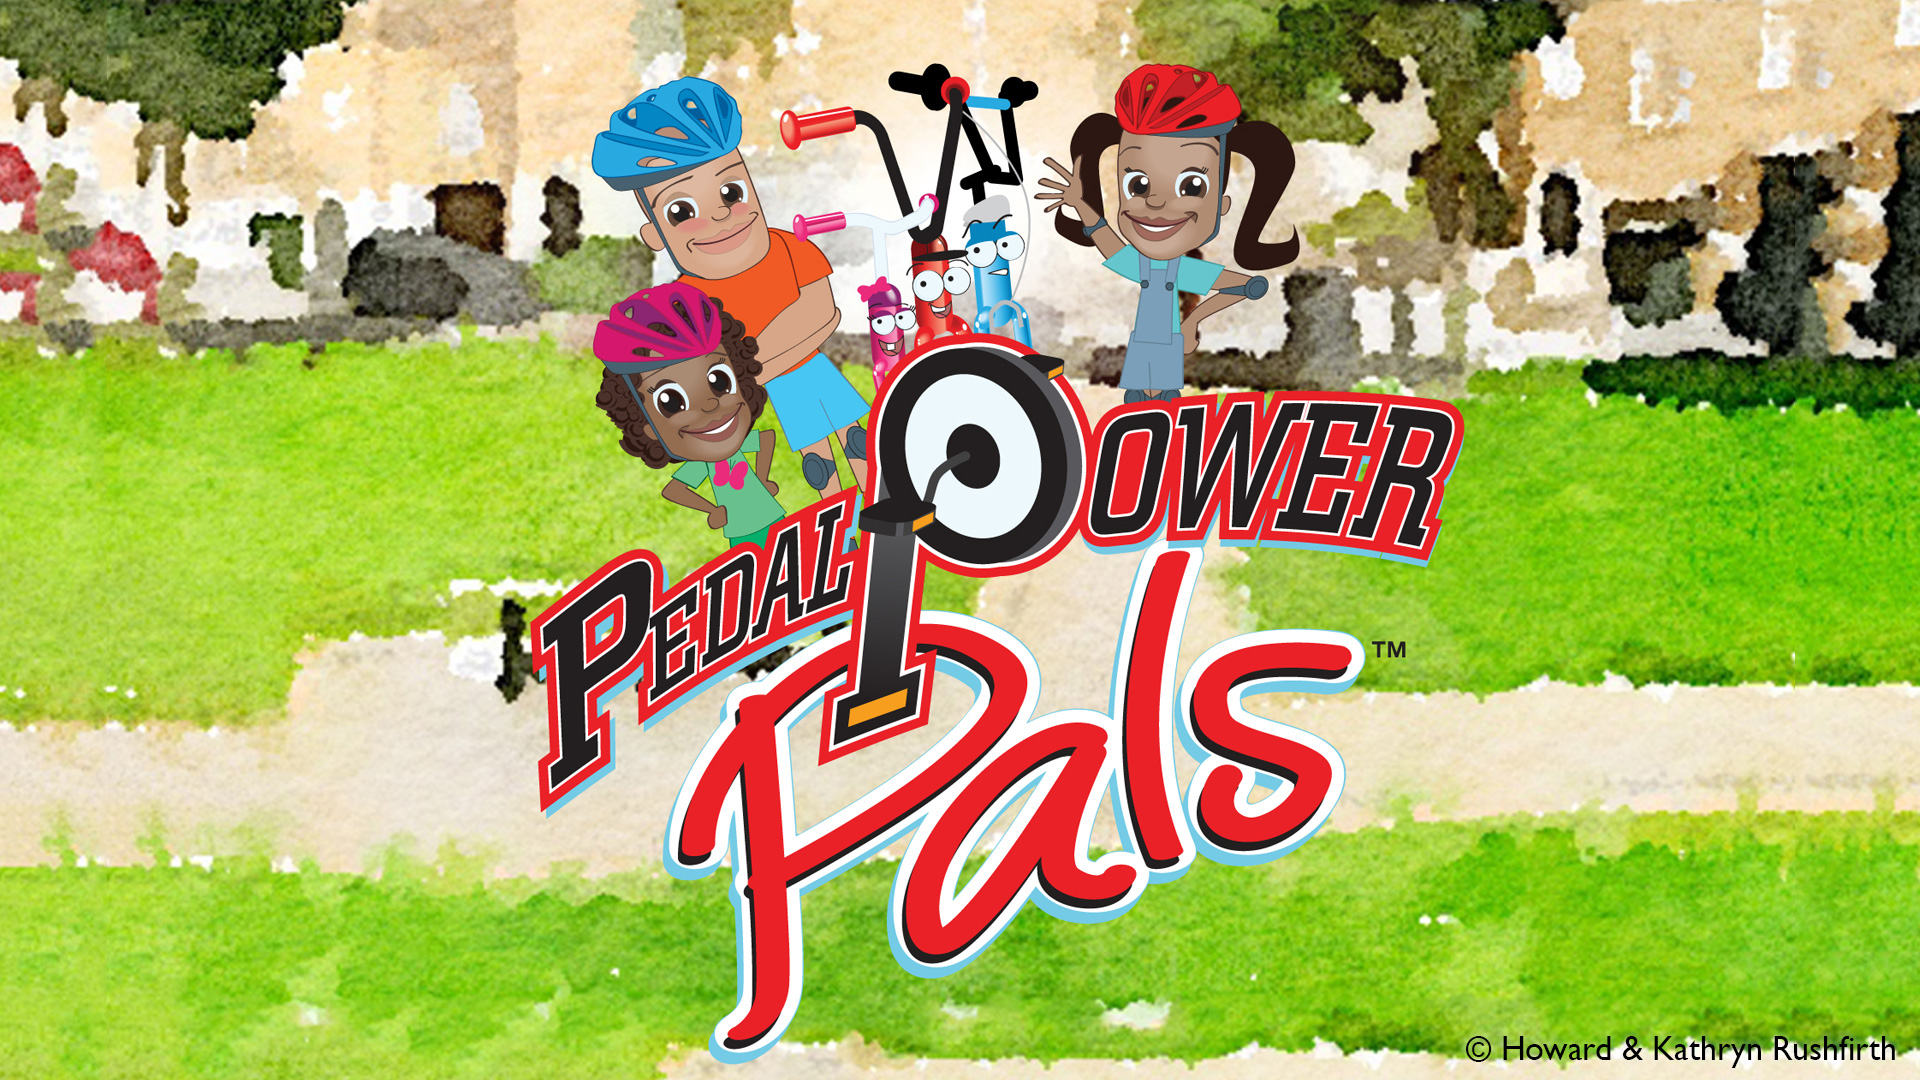 Pedal Power Pals Logo and Characters